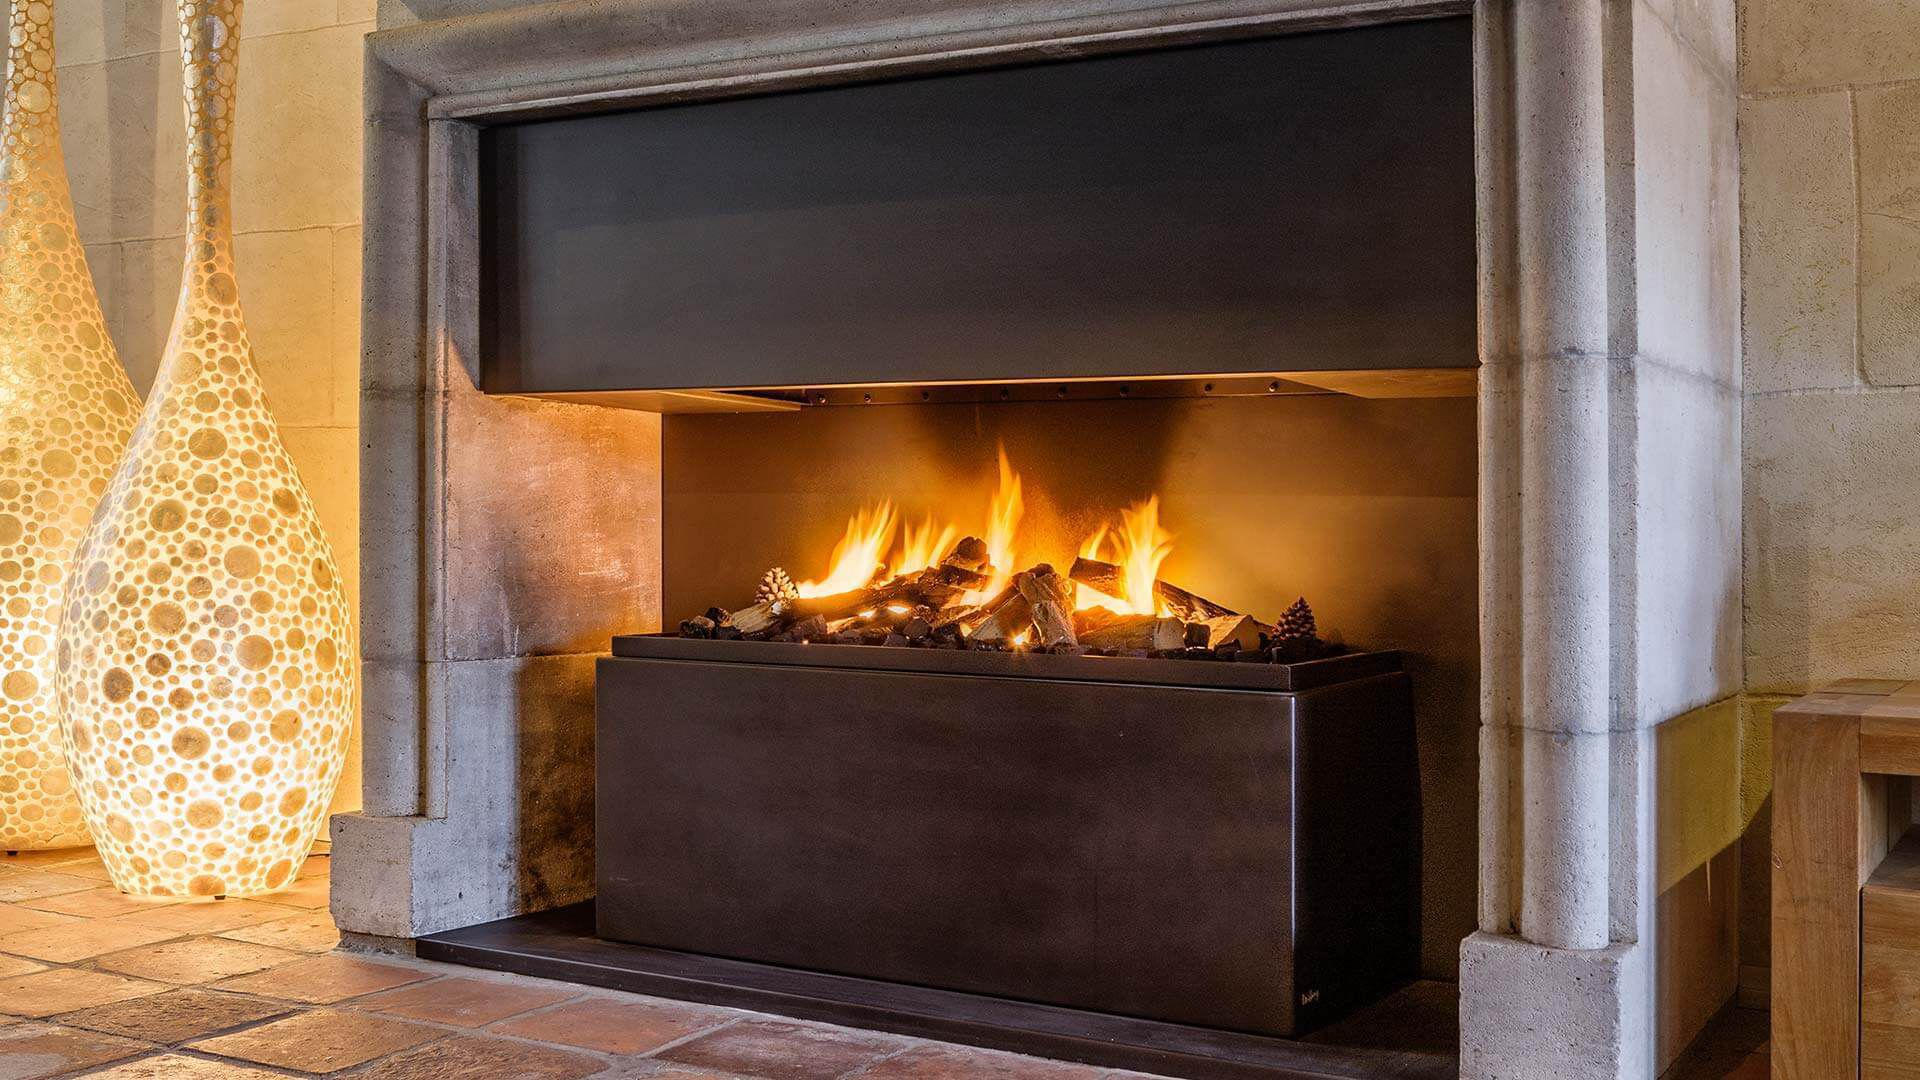 Discover all the information about the product Gas fireplace / traditional / open hearth / floor-mounted SPECIAL 19 - boley and find where you can buy it. Contact the manufacturer directly to receive a quote.